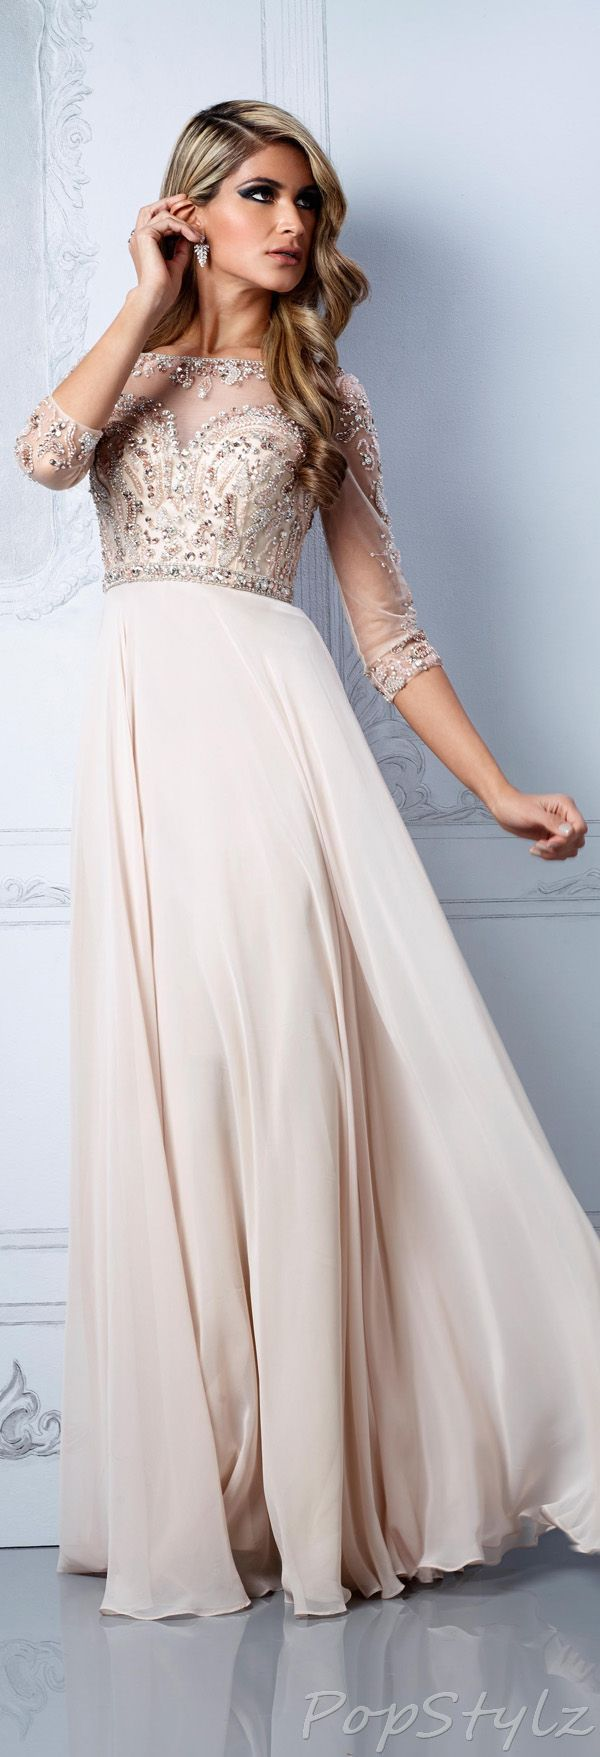 best homecomingprom images on pinterest party outfits